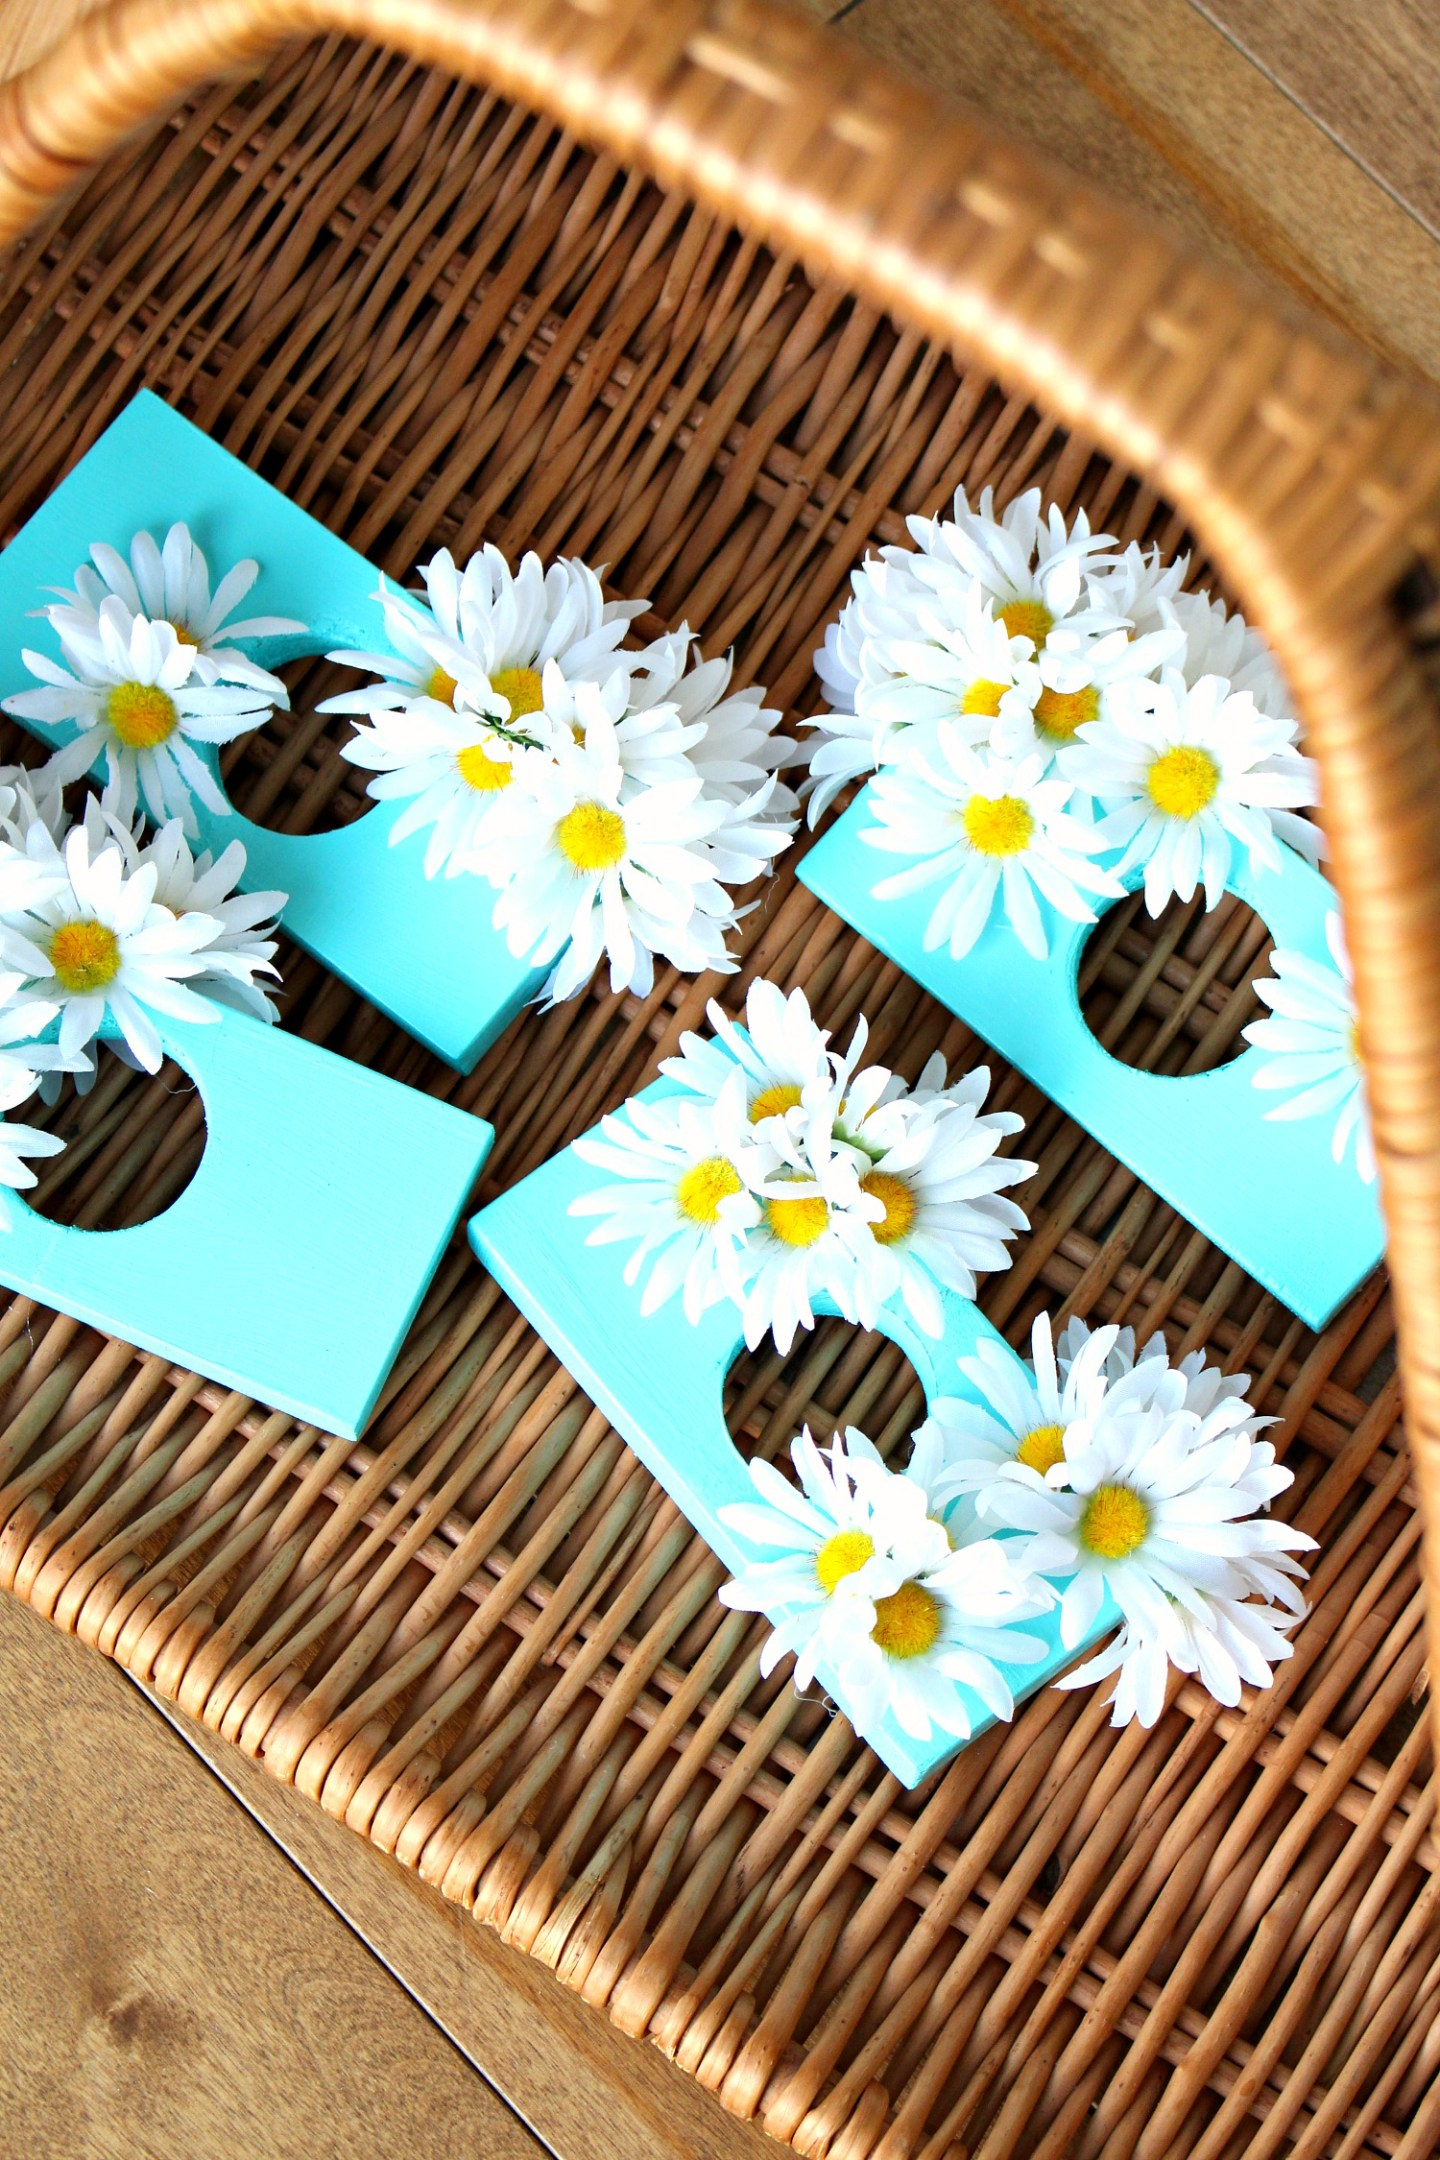 DIY Scrap Wood Napkin Rings with Daisies | Mod Faux Flower Craft